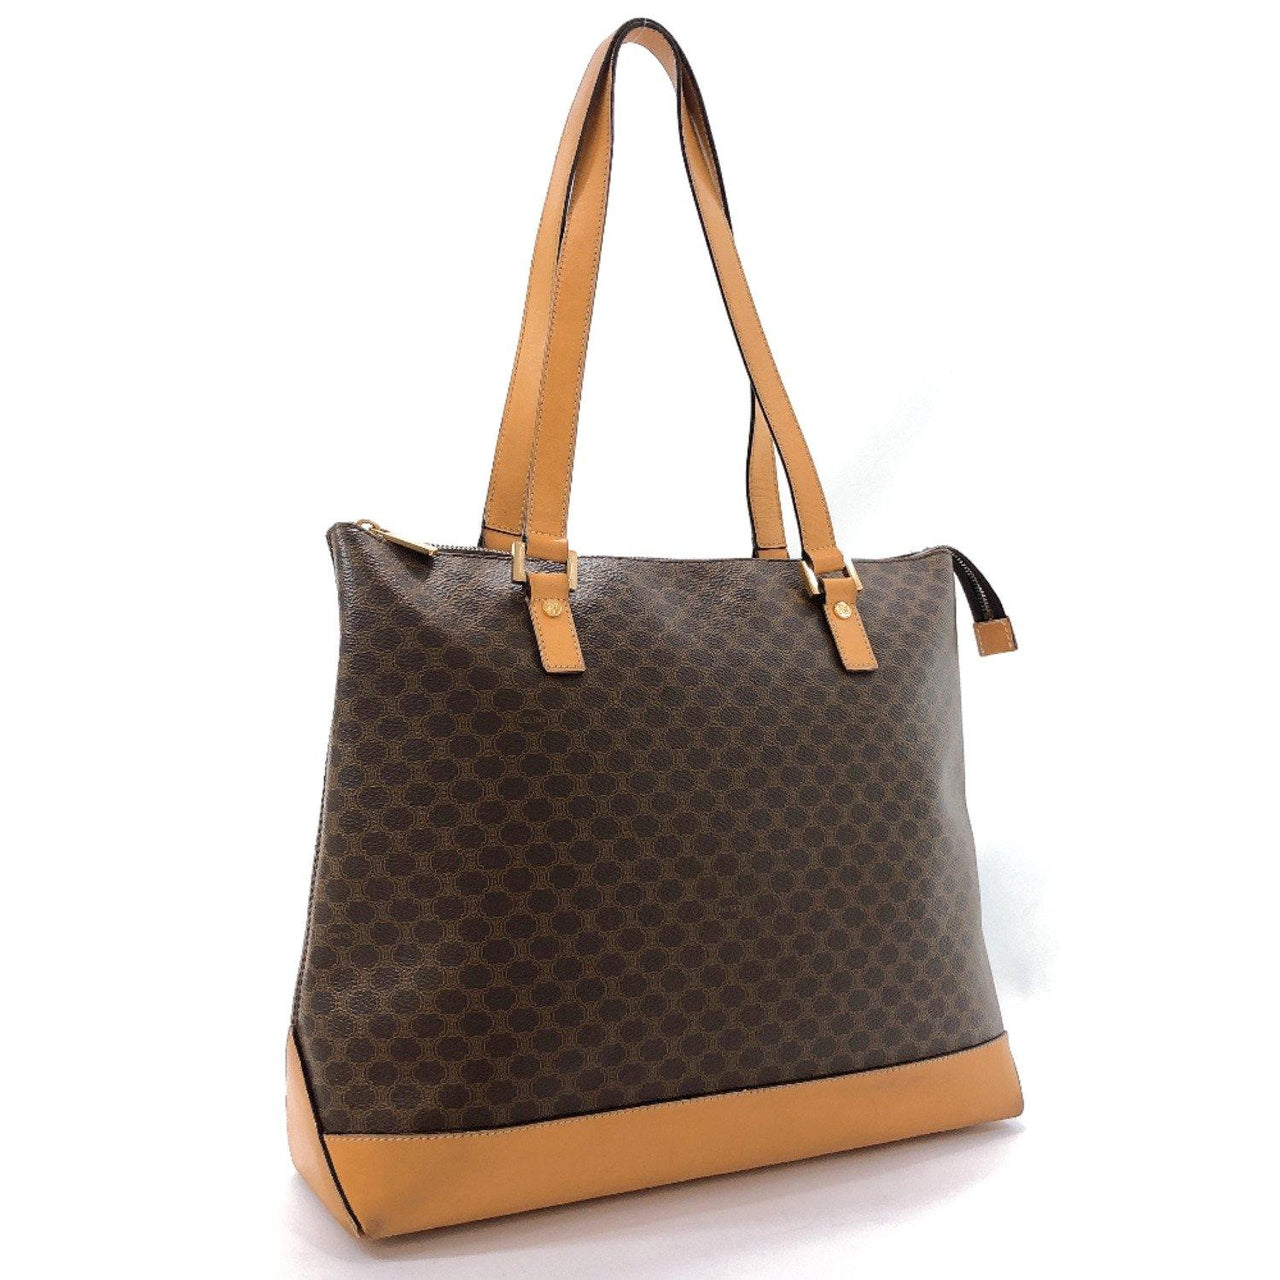 CELINE Tote Bag Macadam pattern PVC/leather Brown Women Used